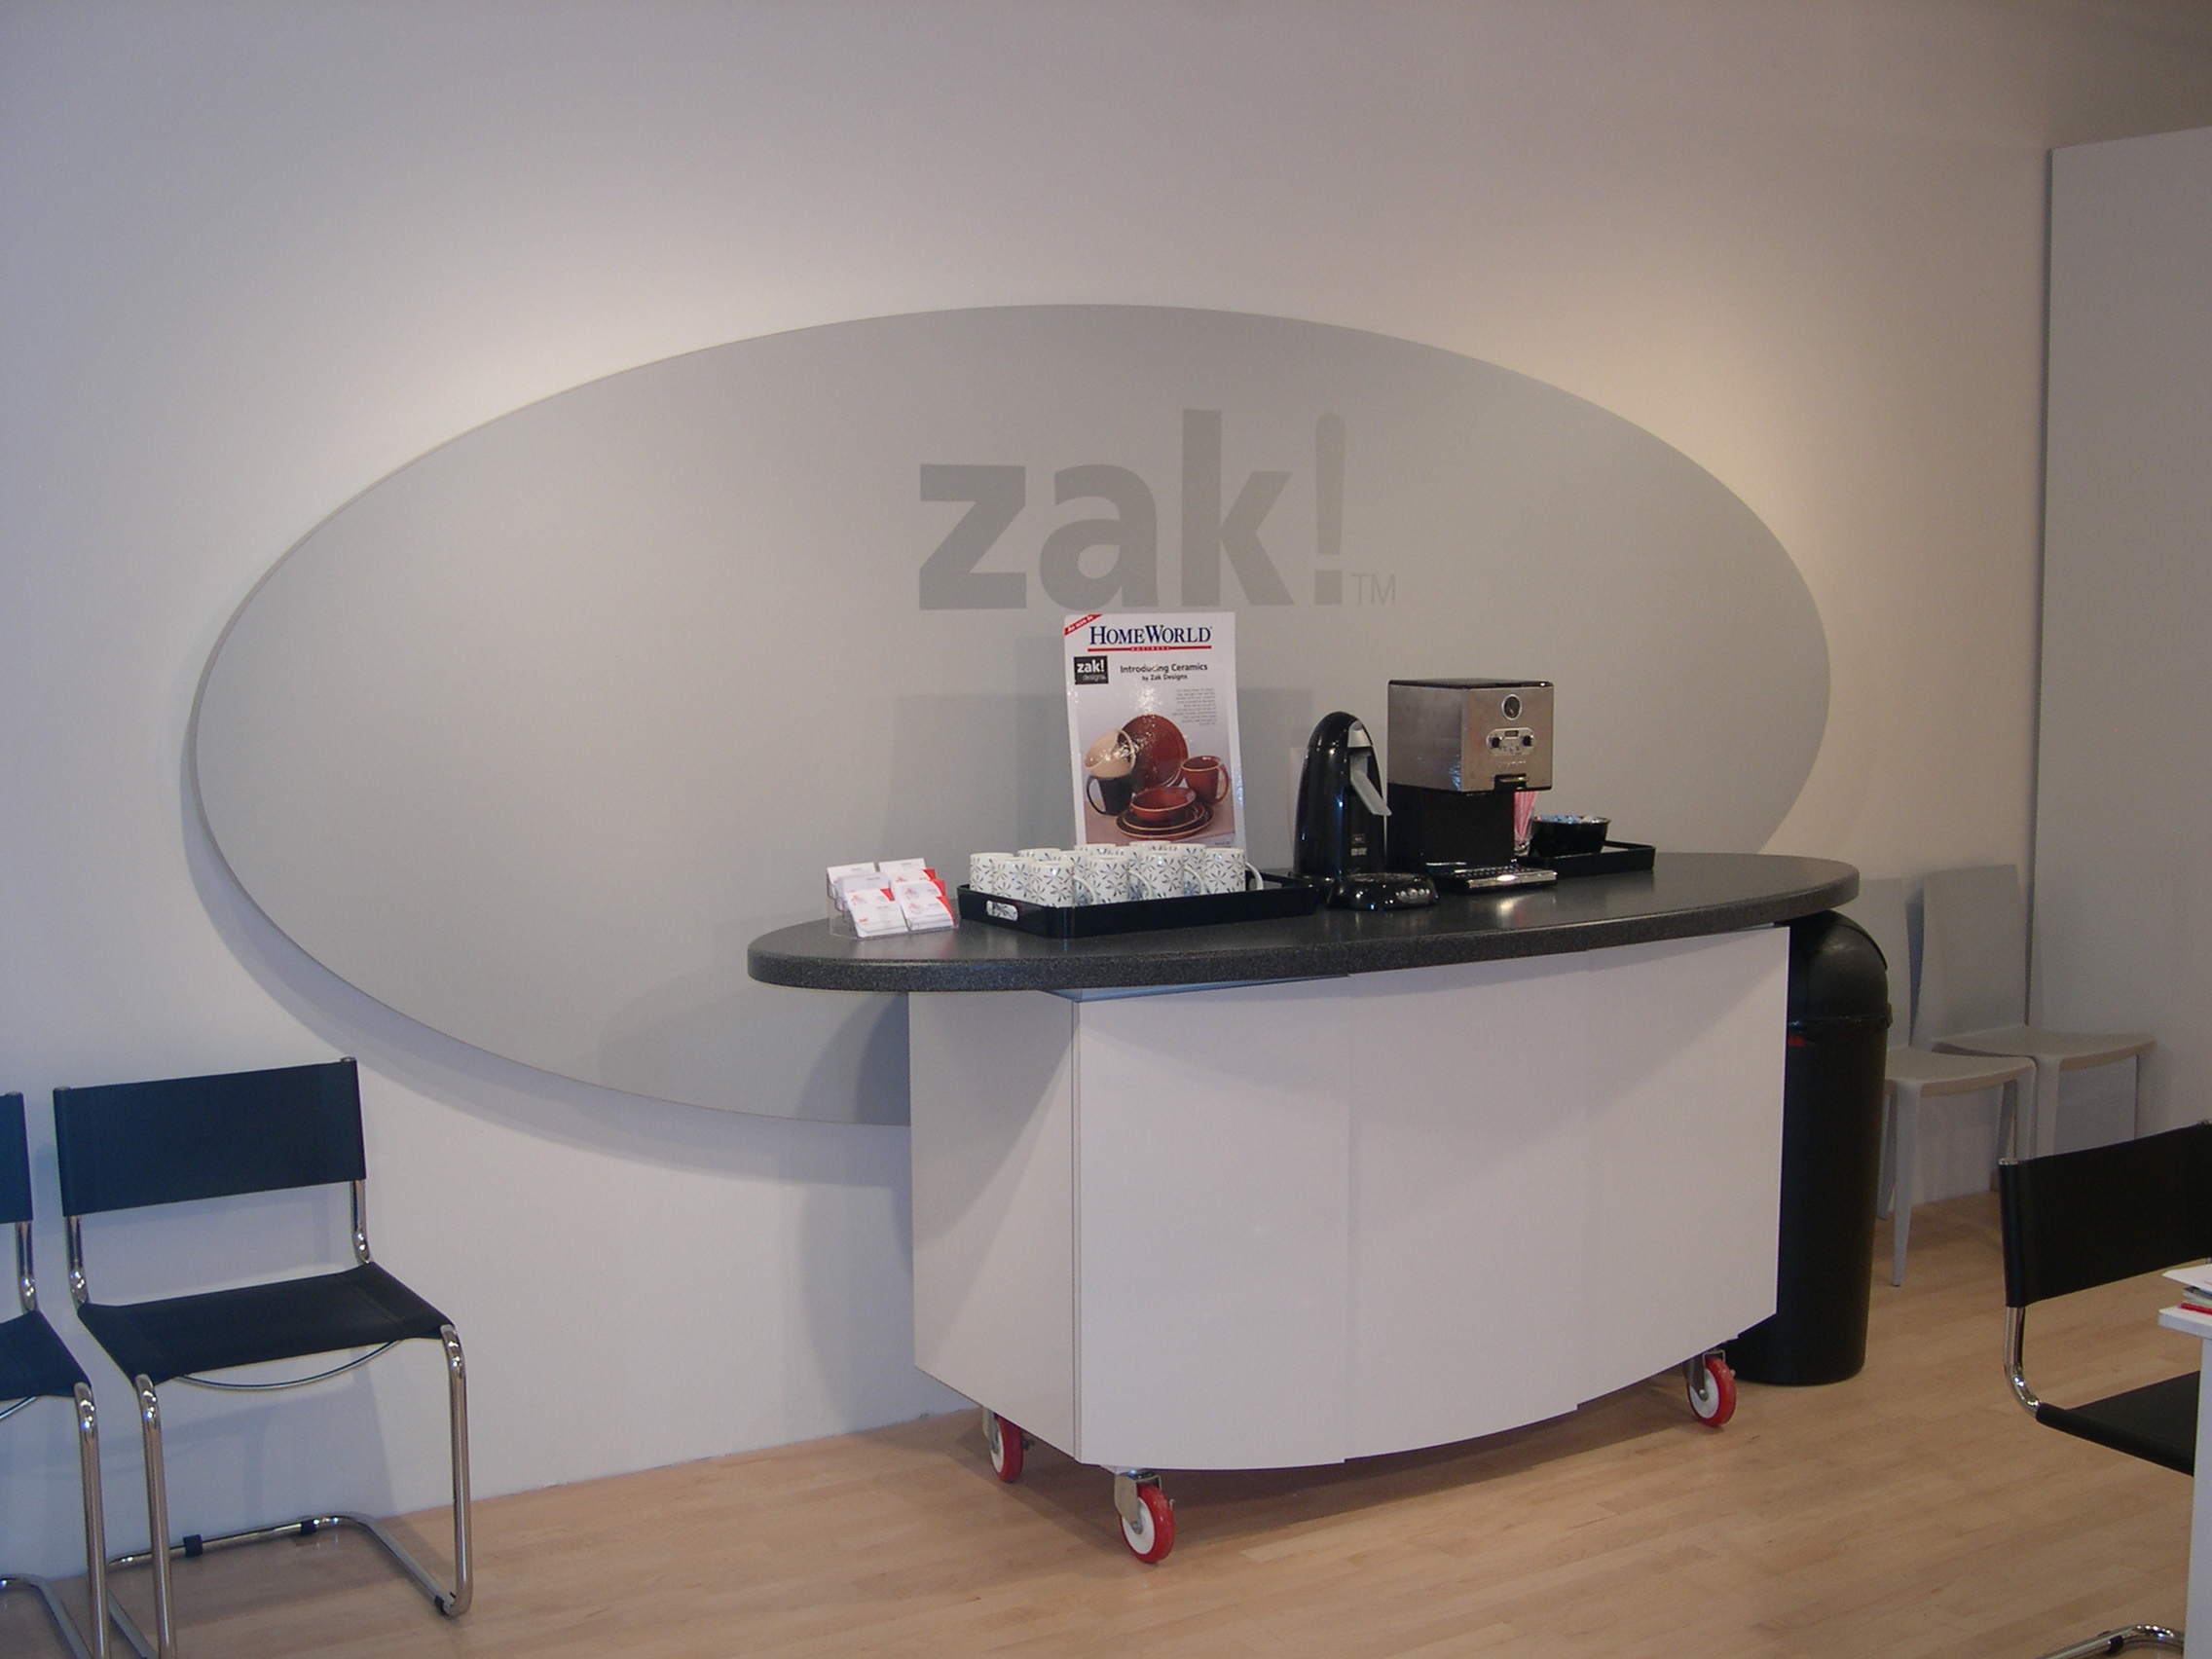 Custom Trade Show Display Design for Zak